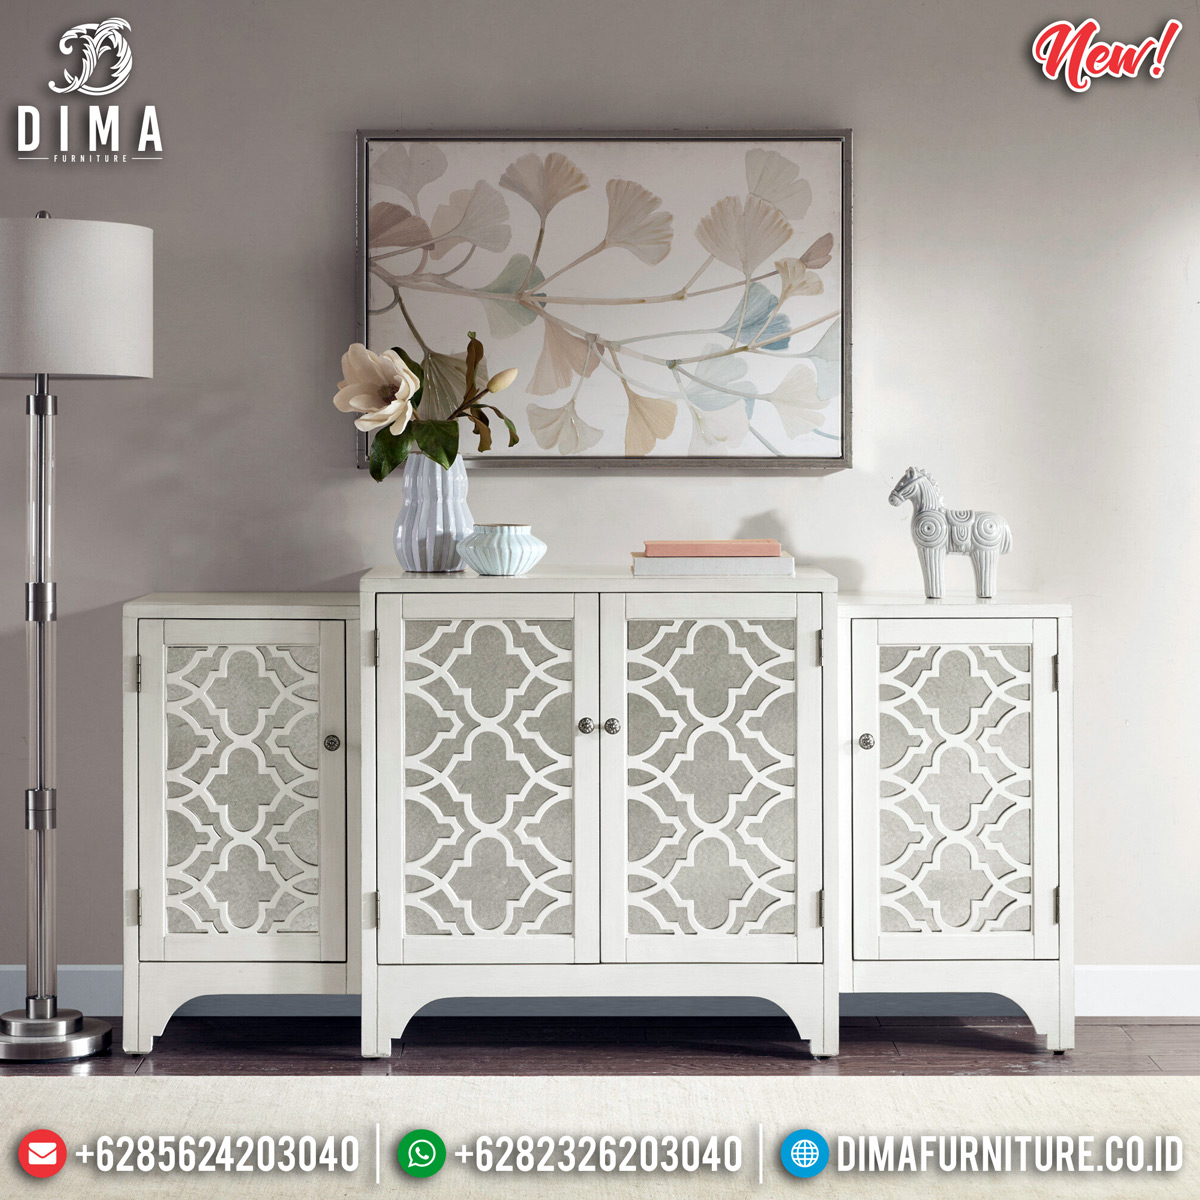 Harga Meja Konsul Minimalis Jepara New Normal Edition Furniture Jepara BT-0720